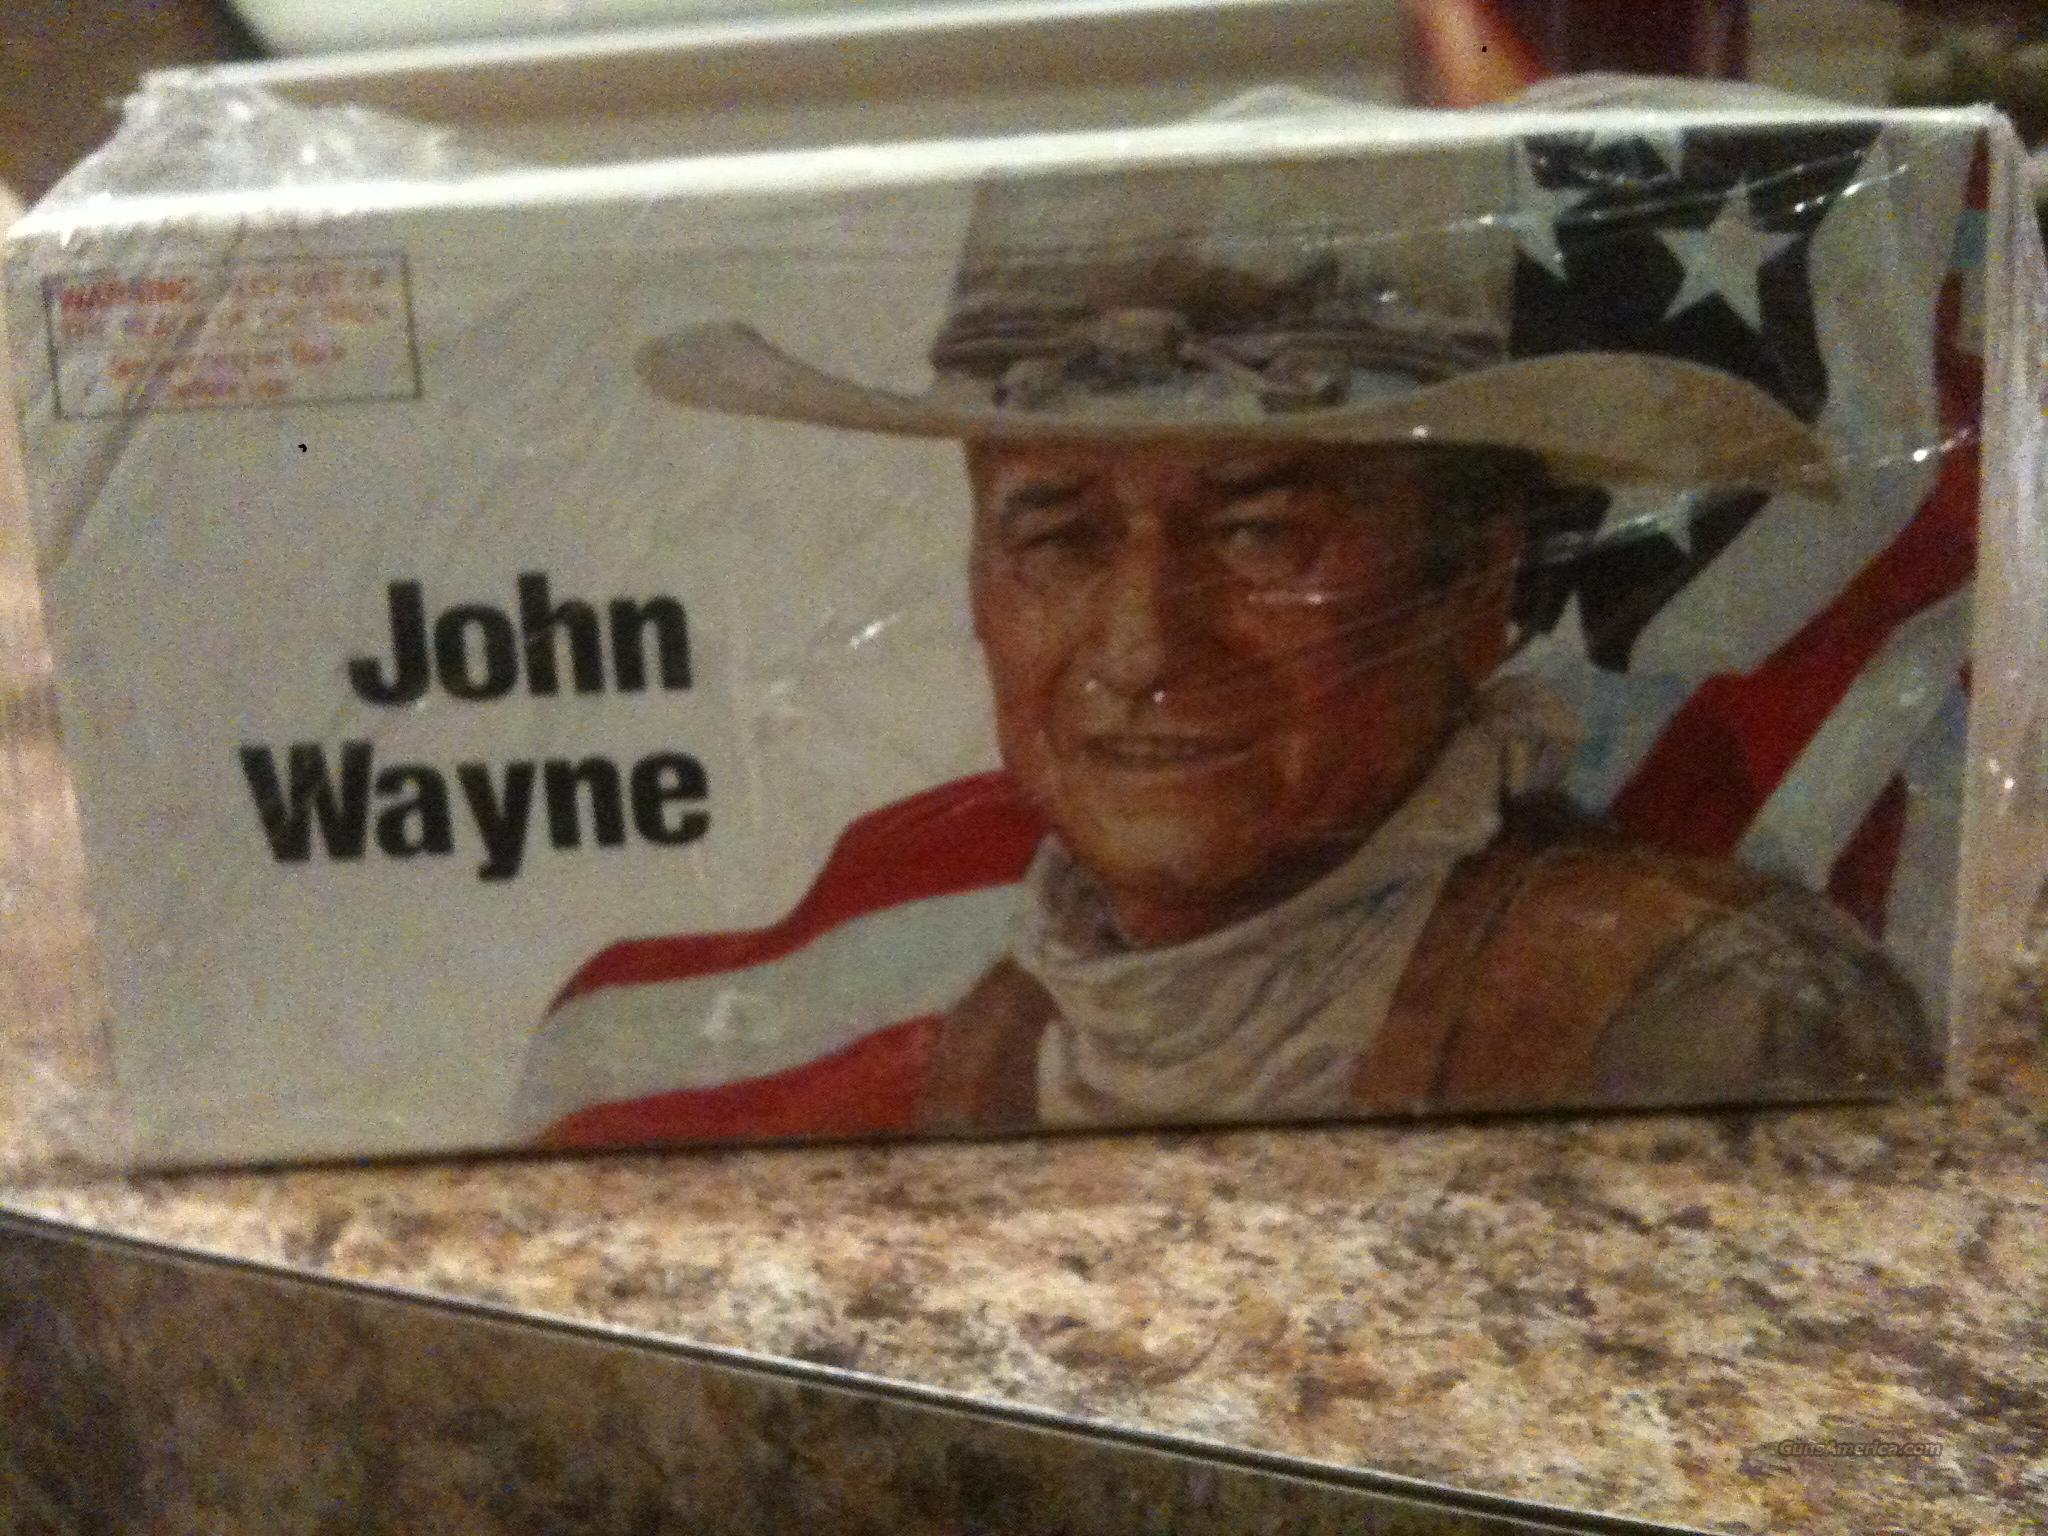 JOHN WAYNE 32-40 COMMEMORATIVE BOX OF AMMO BY WINCHESTER- UNOPENED - VINTAGE!!!!  Non-Guns > Ammunition